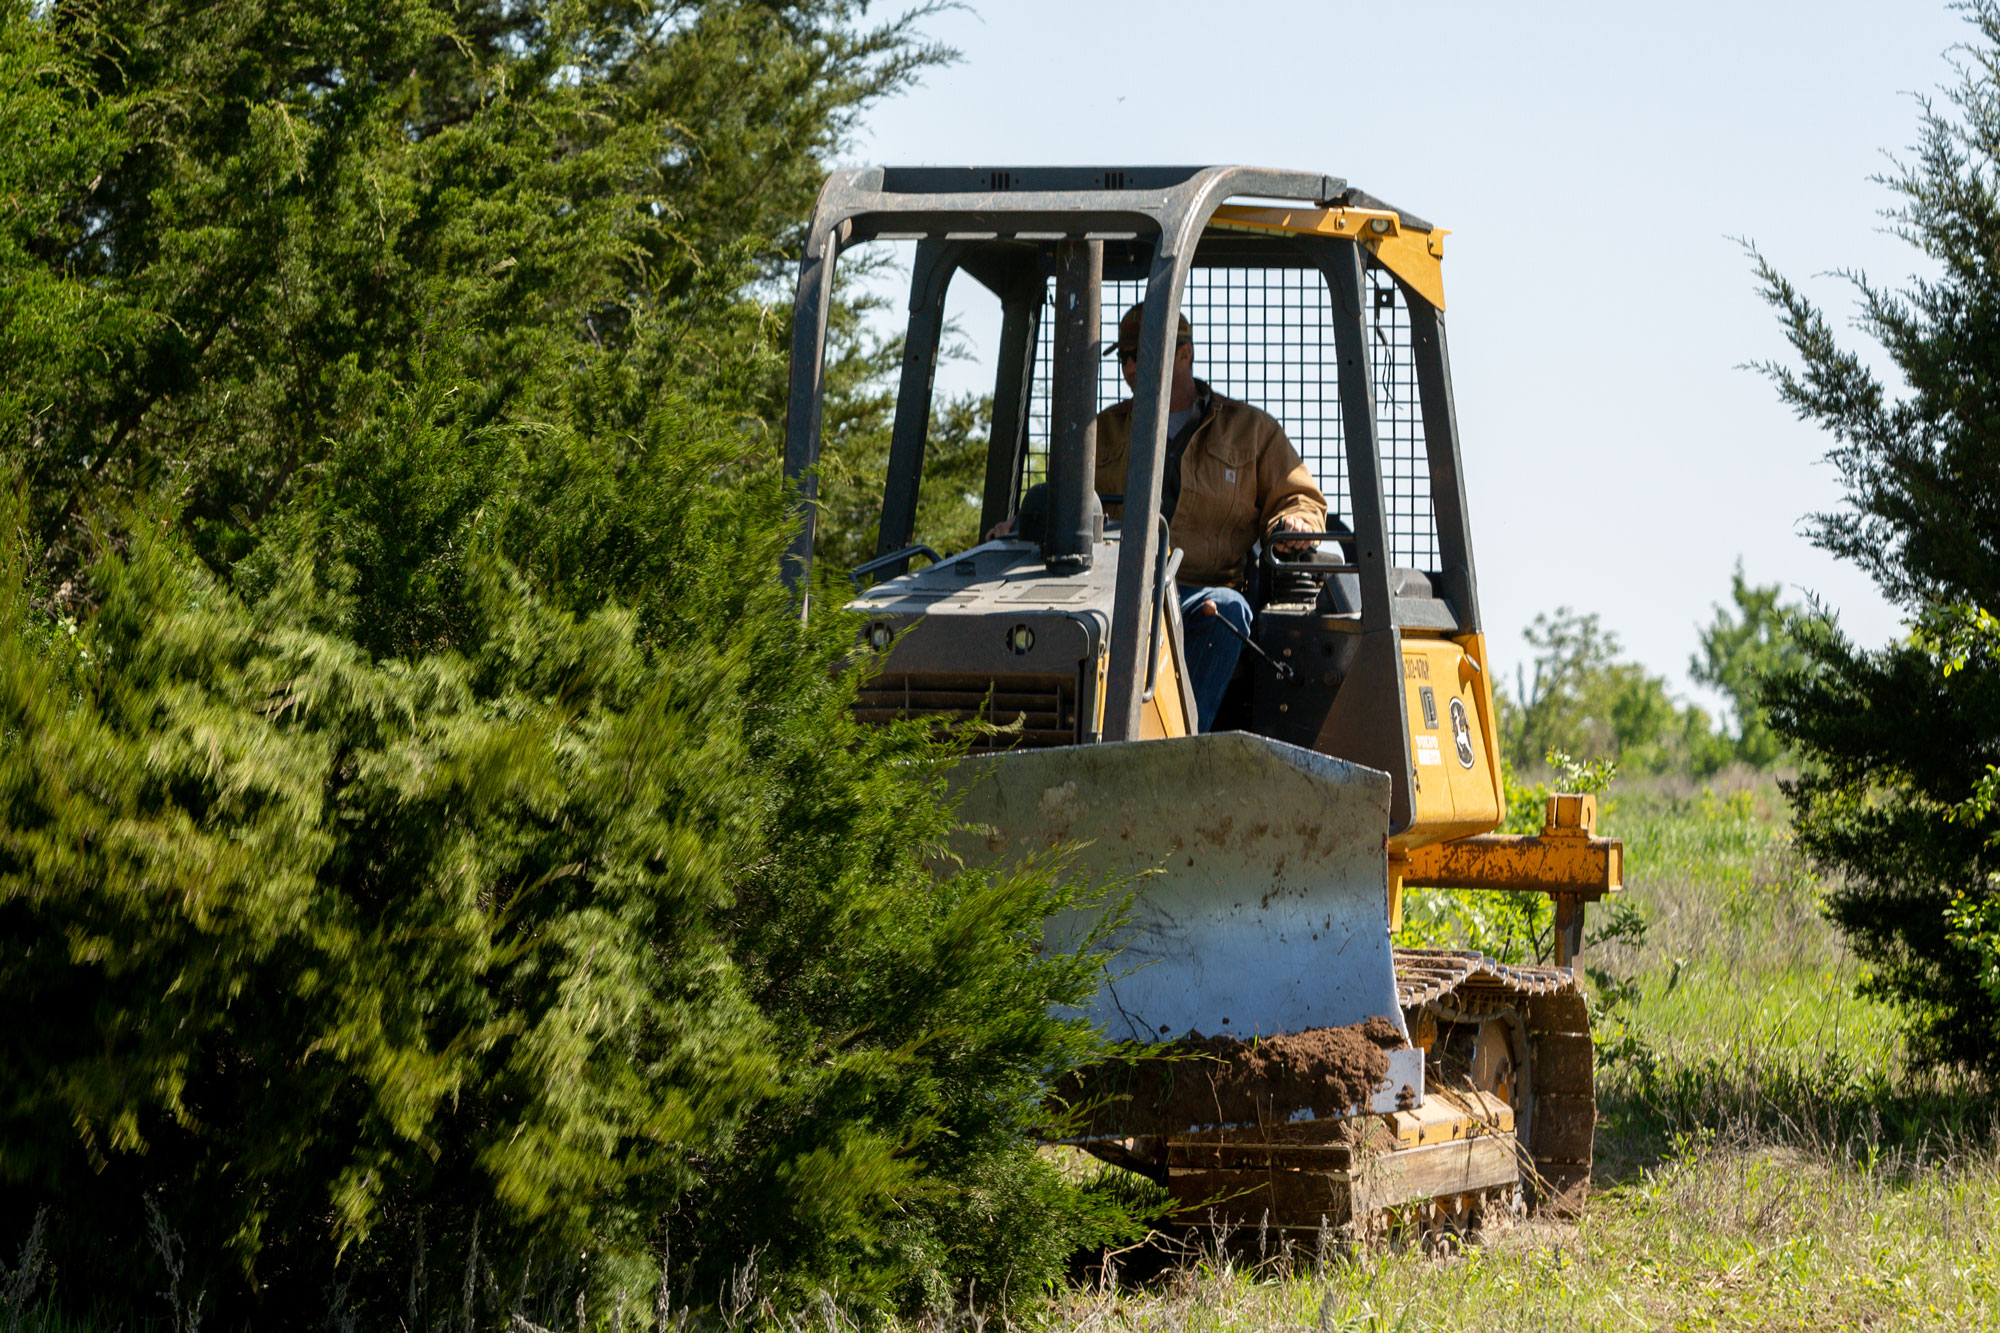 Clearing land with heavy equipment